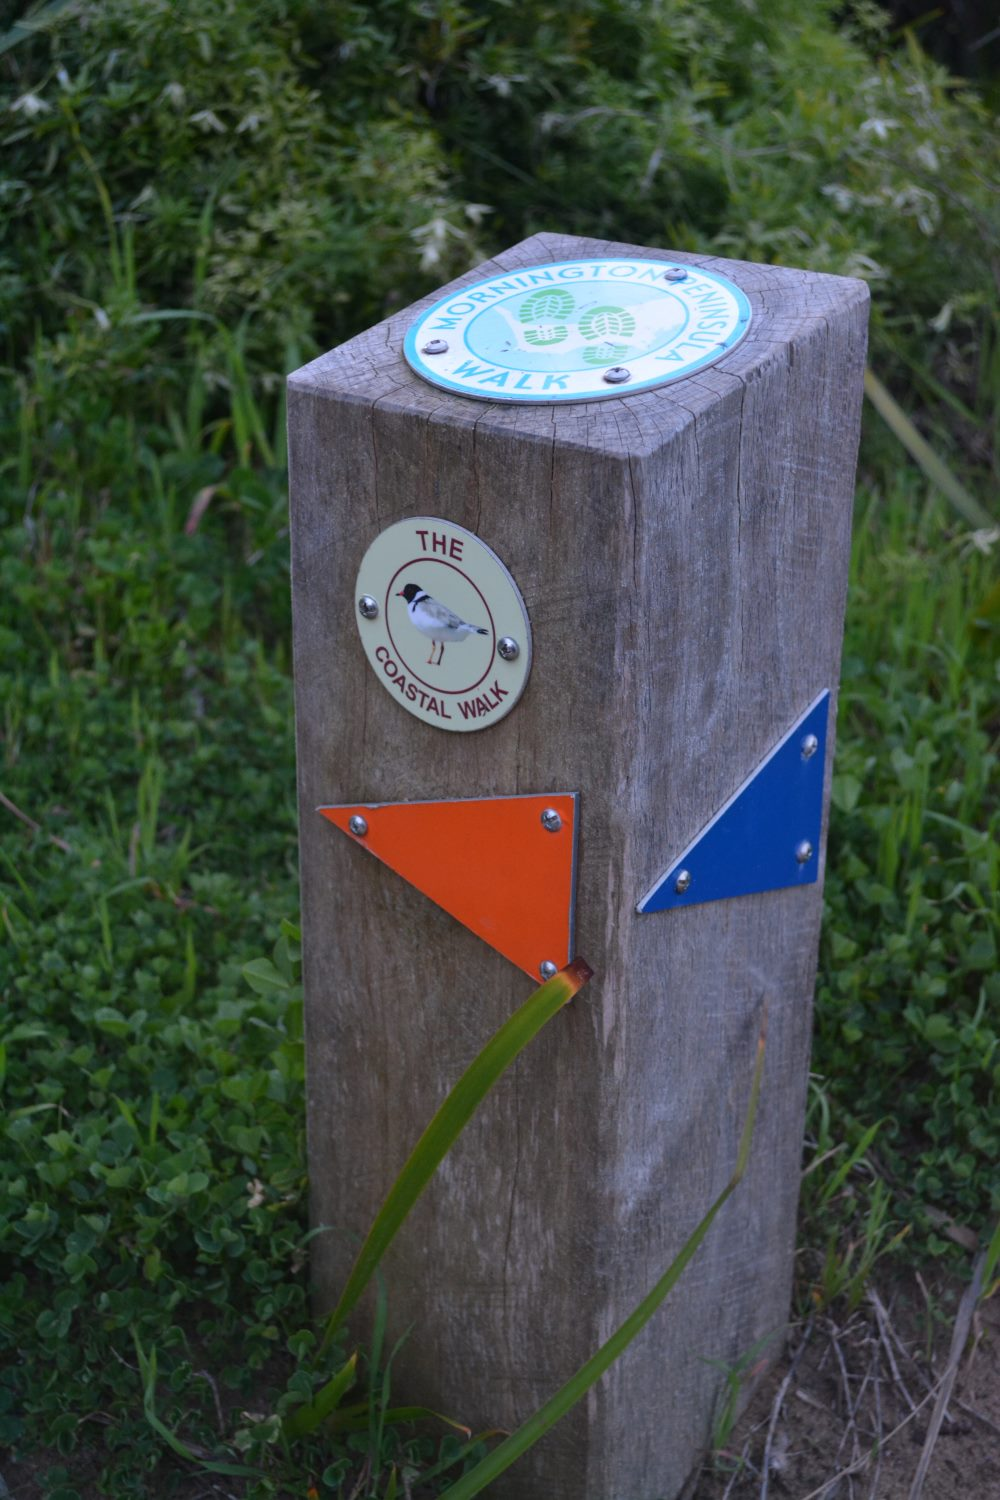 Directions for the Coastal Walk